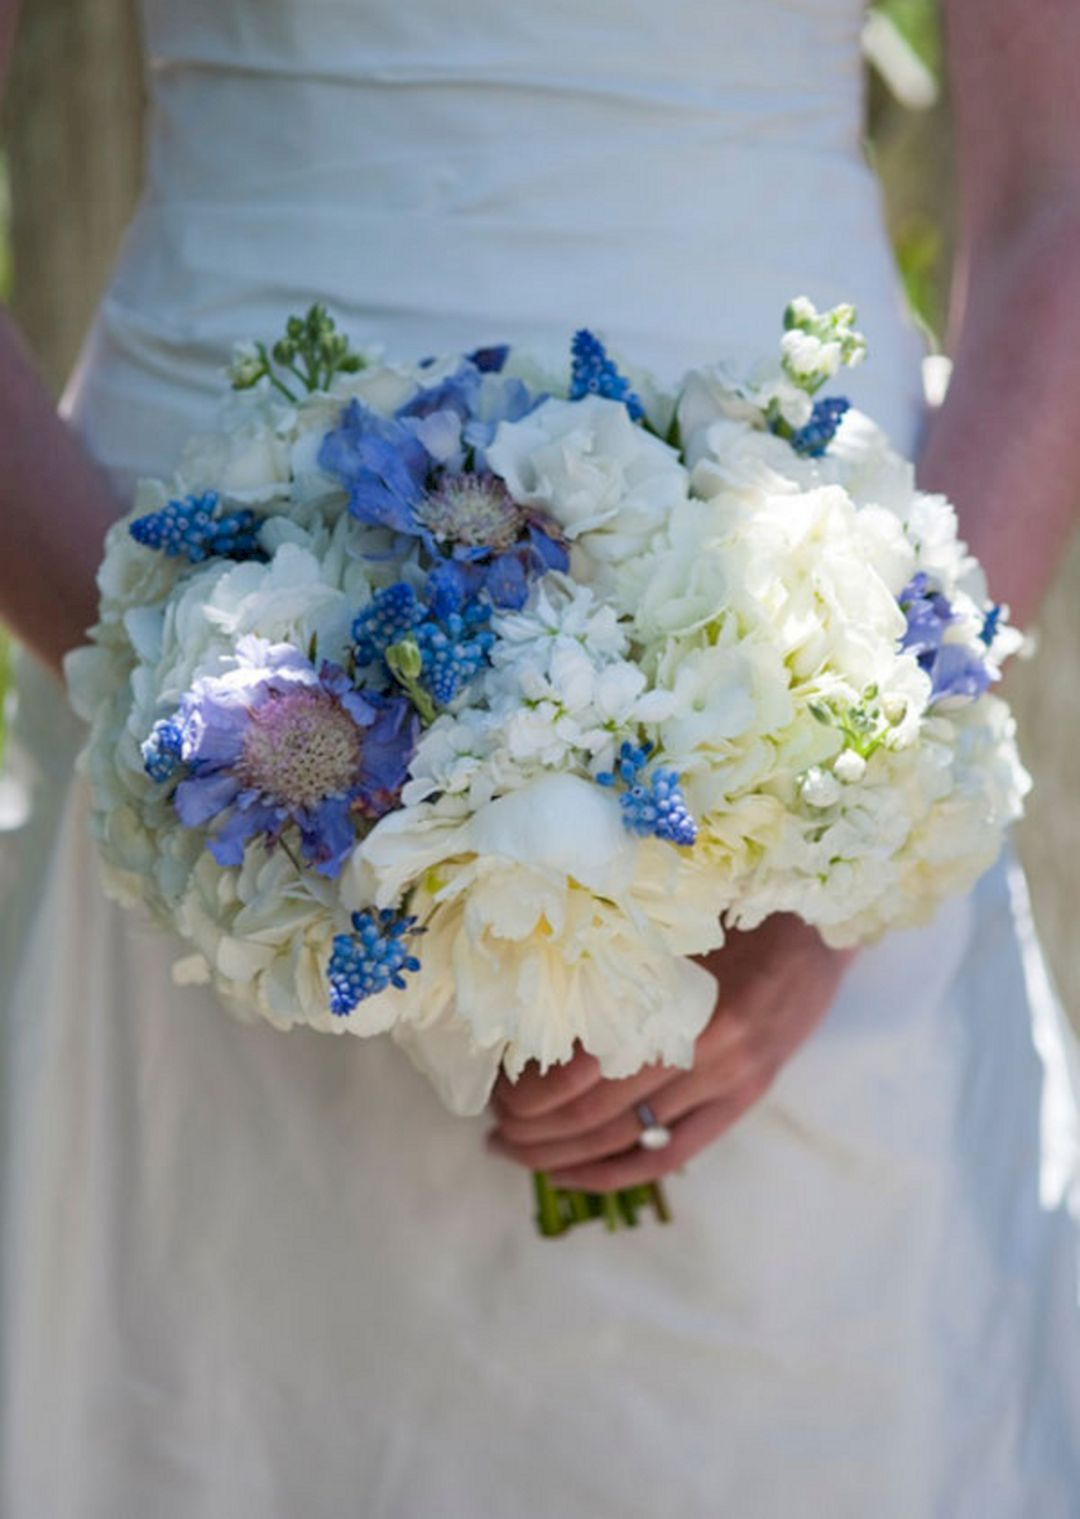 15 awesome flower wedding bouquet ideas wedding bouquet ideas various bridal arrangements bouquets to impress on your most beautifull day izmirmasajfo